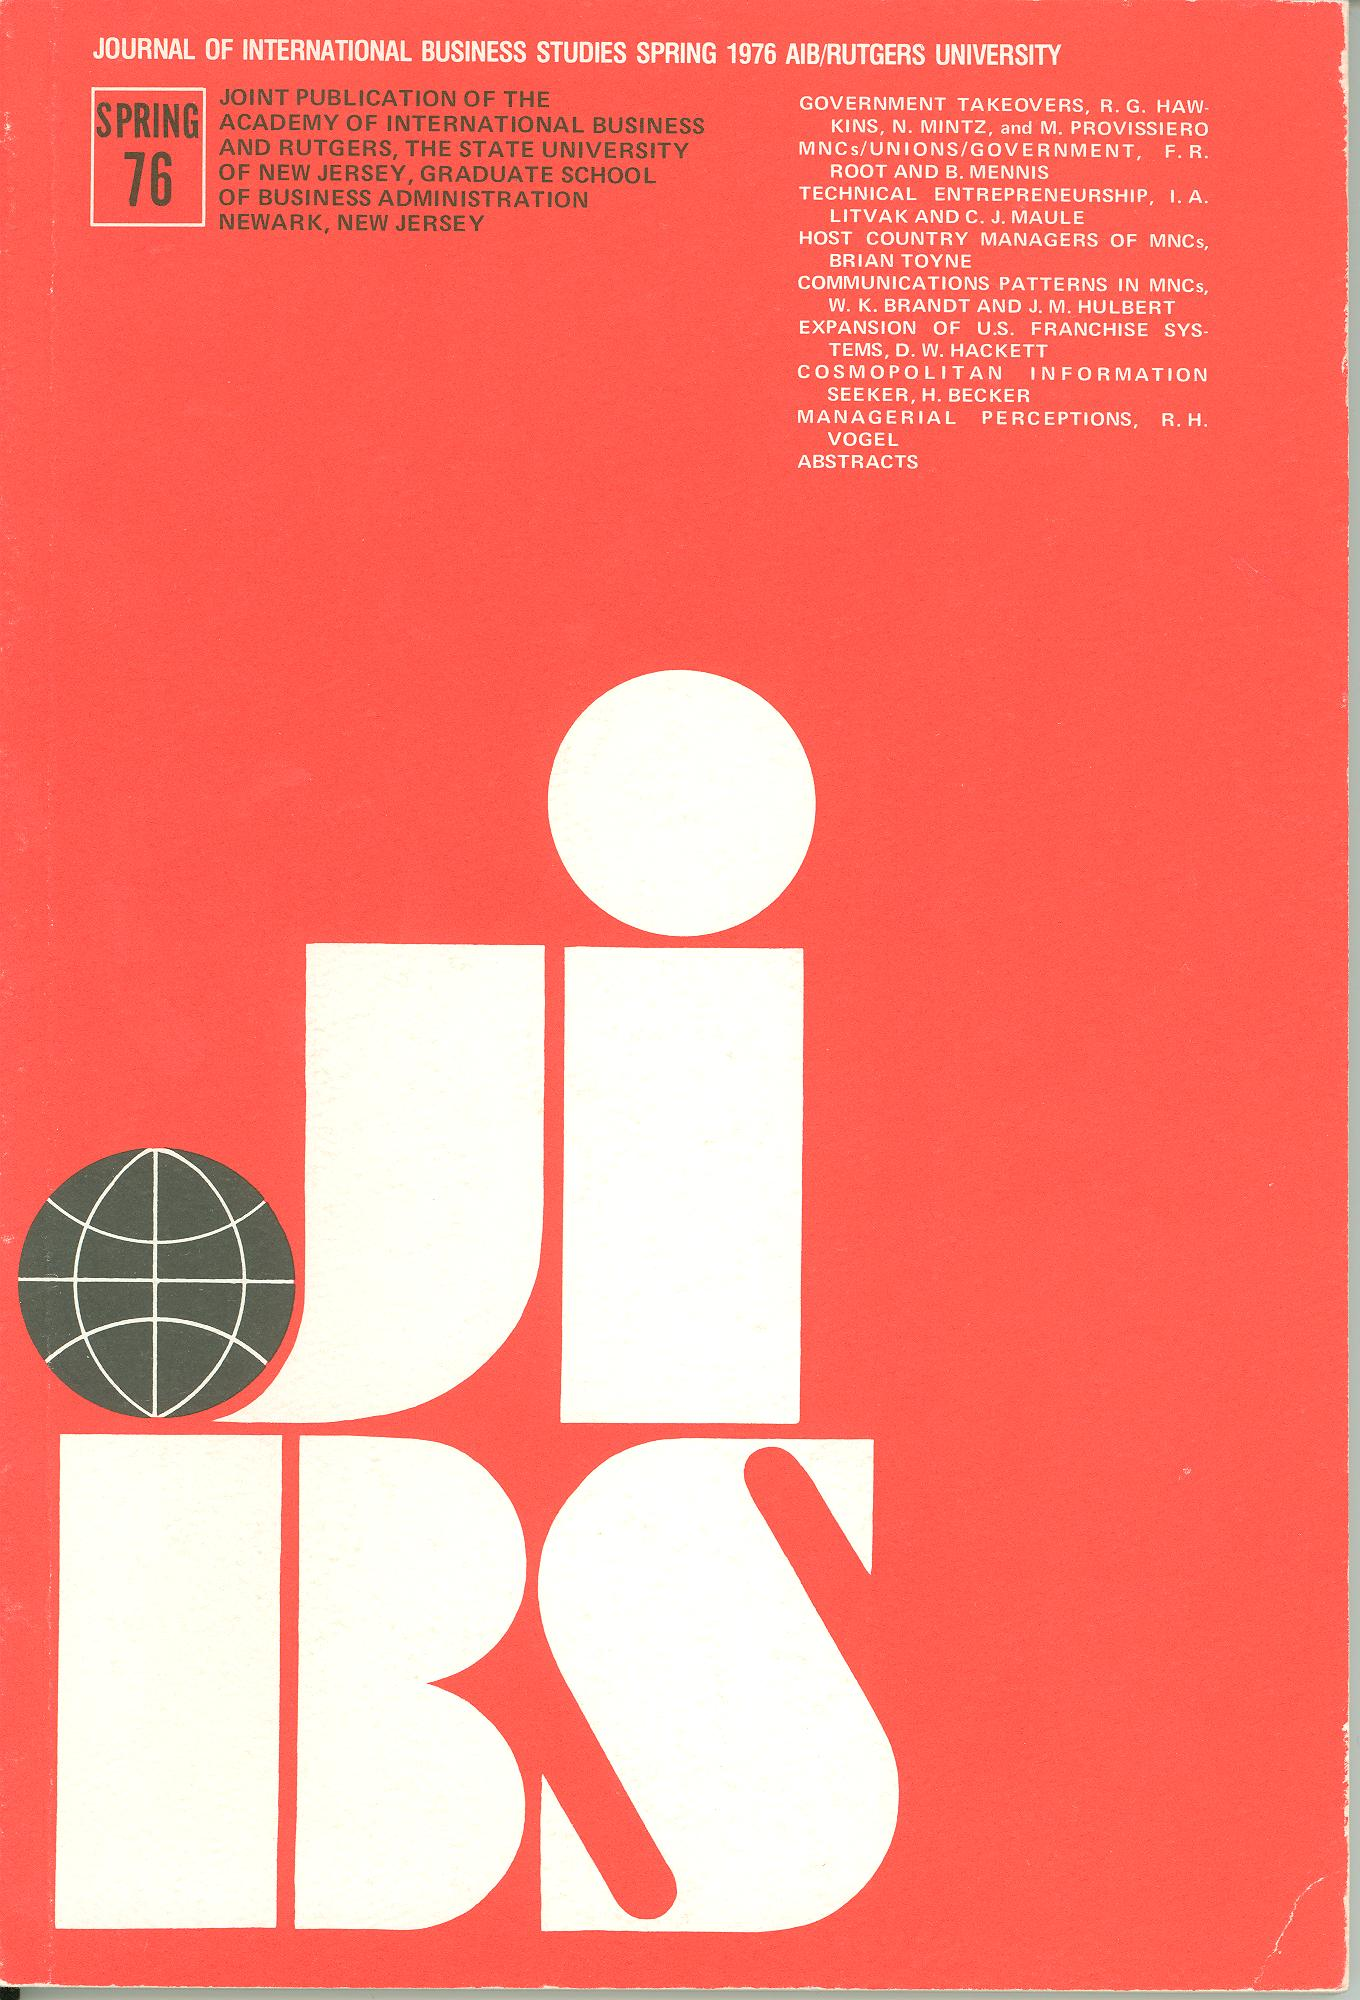 Cover design from a 1976 issue of JIBS